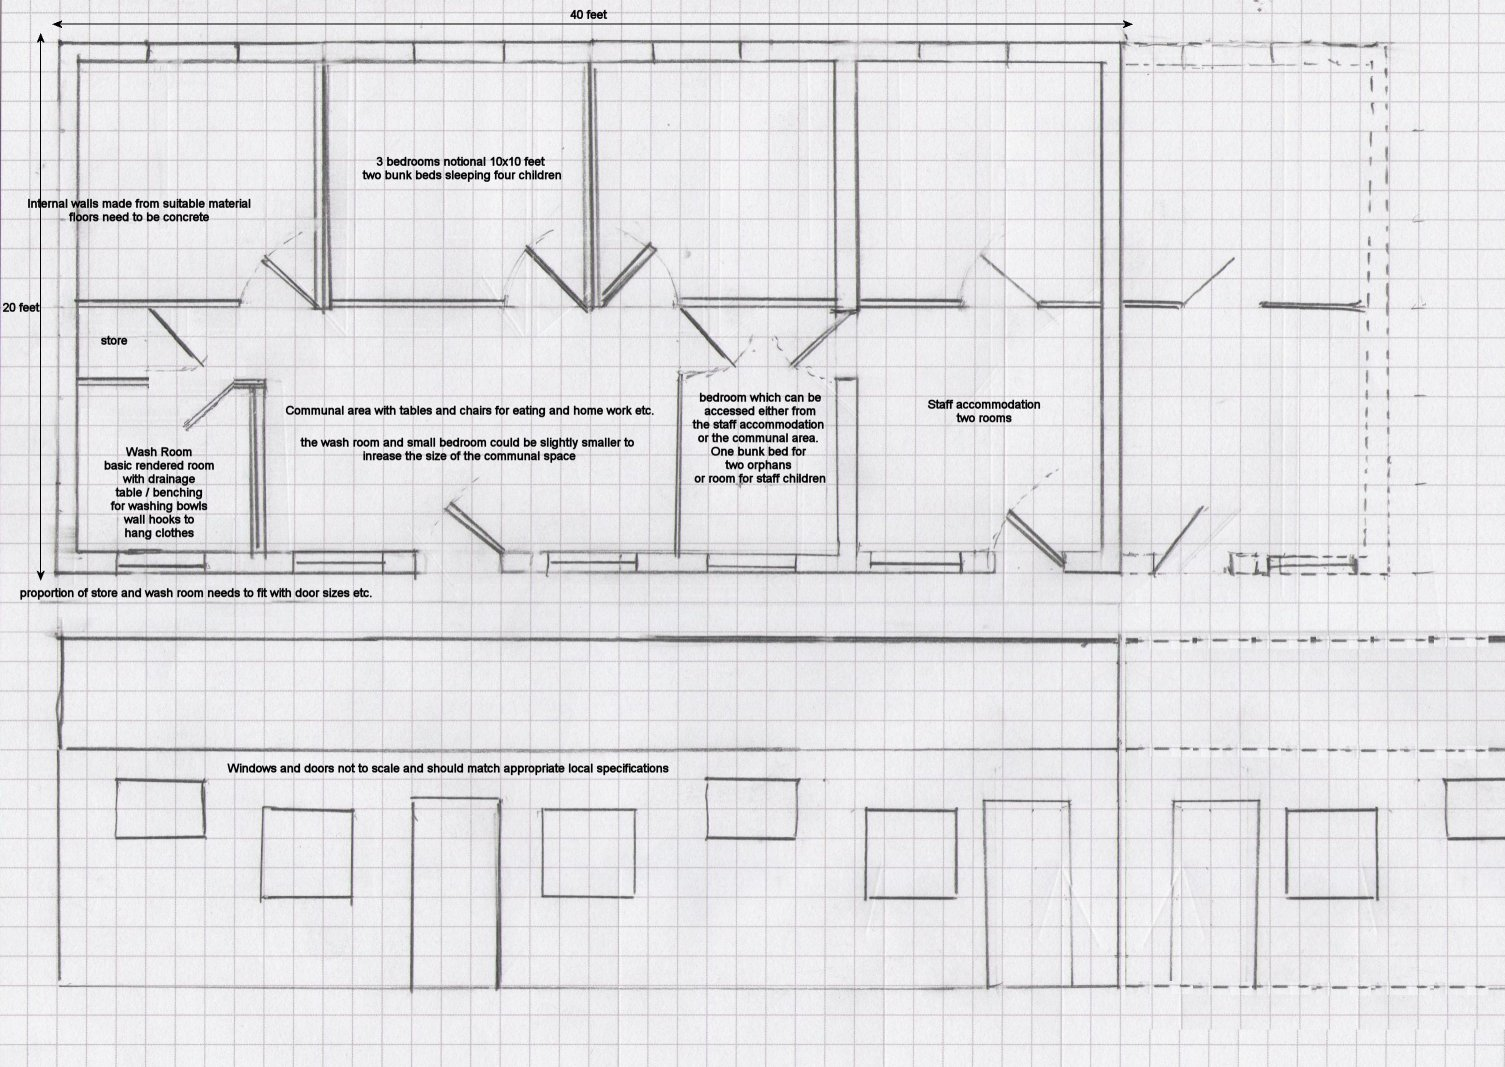 initial draft plan for first accommodation building of the Children's Home at Moi's Bridge